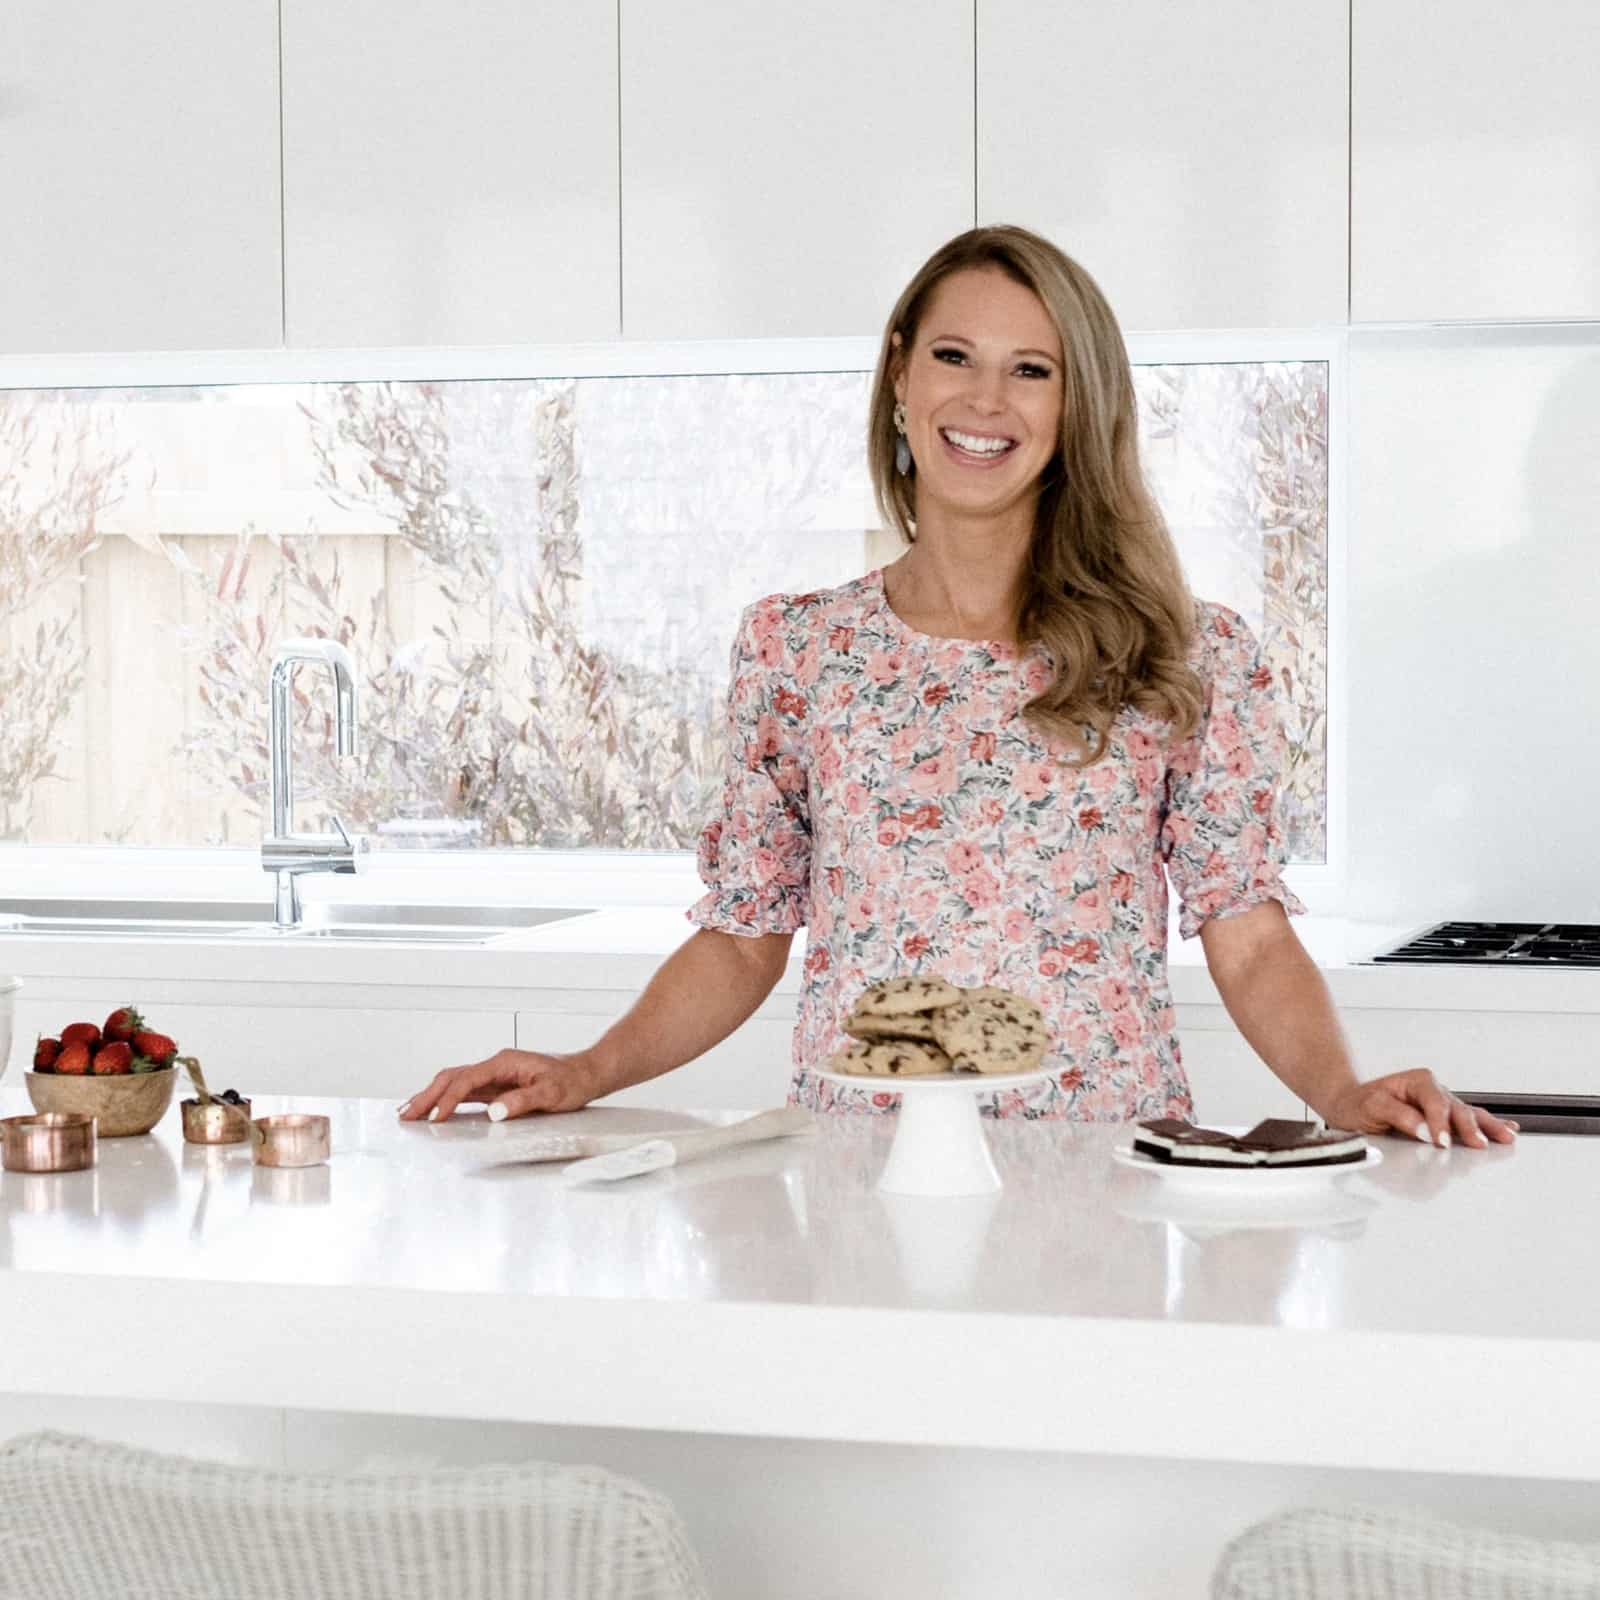 An image of Lucy from Bake Play Smile in the kitchen